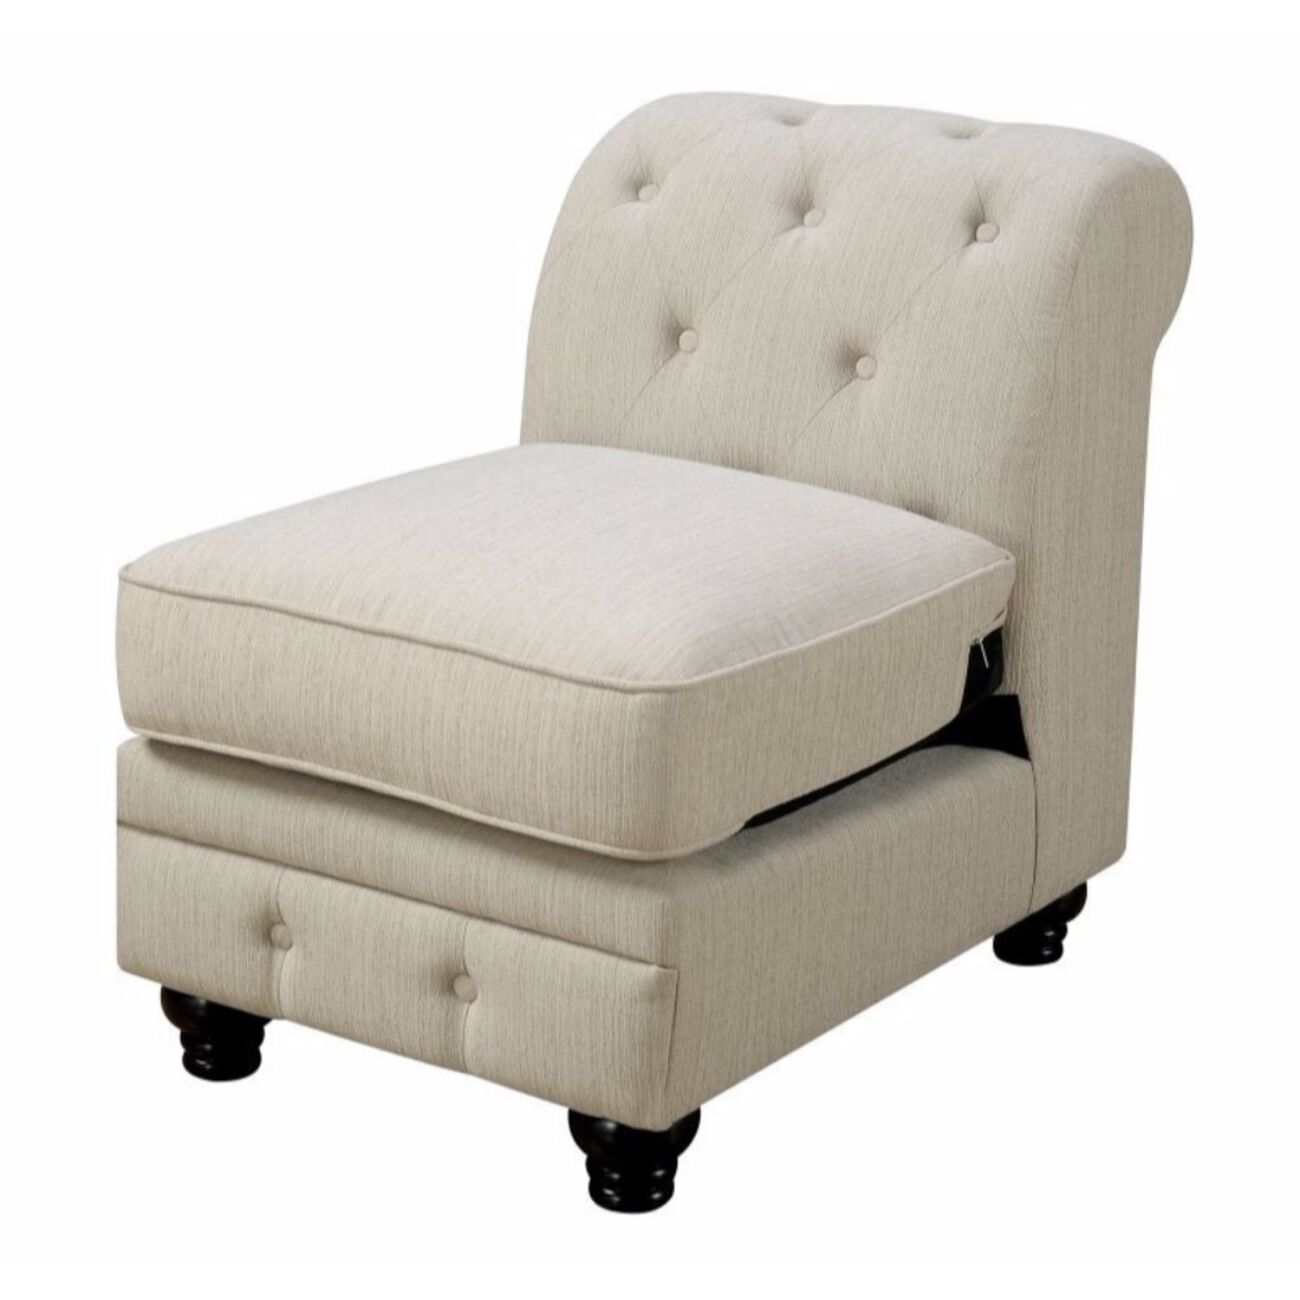 Stanford II Sofa Chair, Ivory Fabric